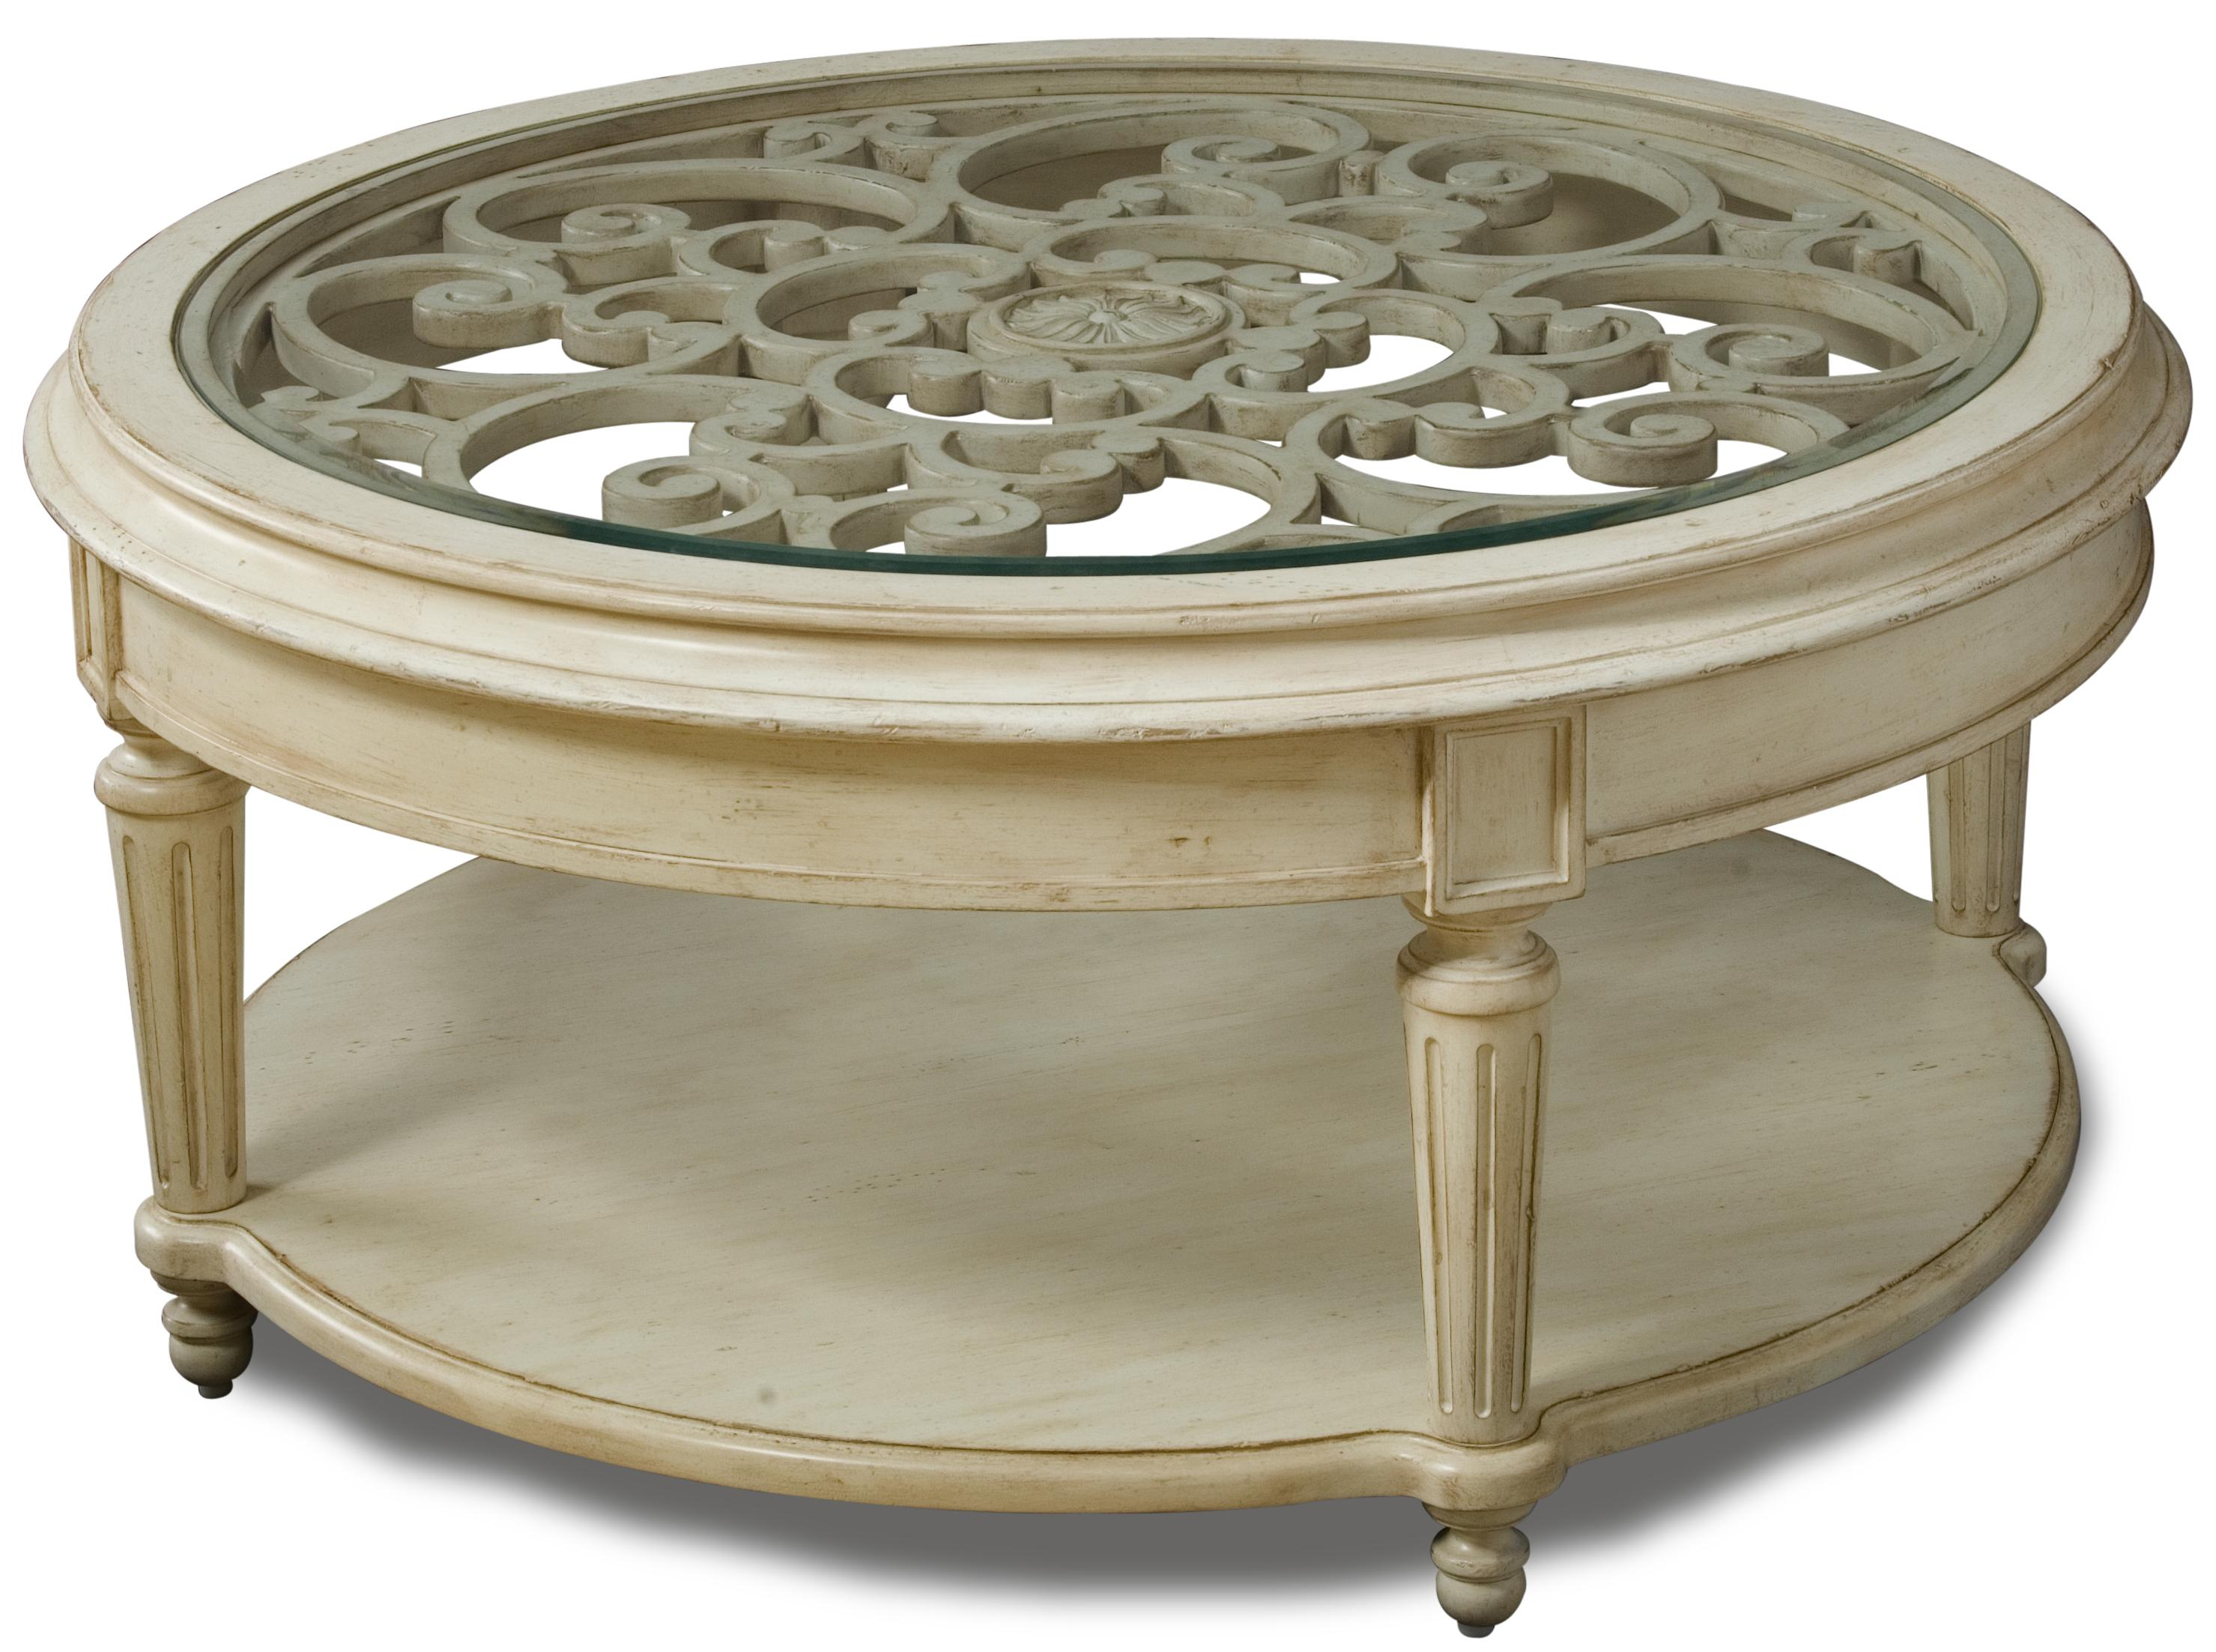 circular furniture. A.R.T. Furniture Inc Provenance Round Cocktail Table - Item Number: 76302 Circular H